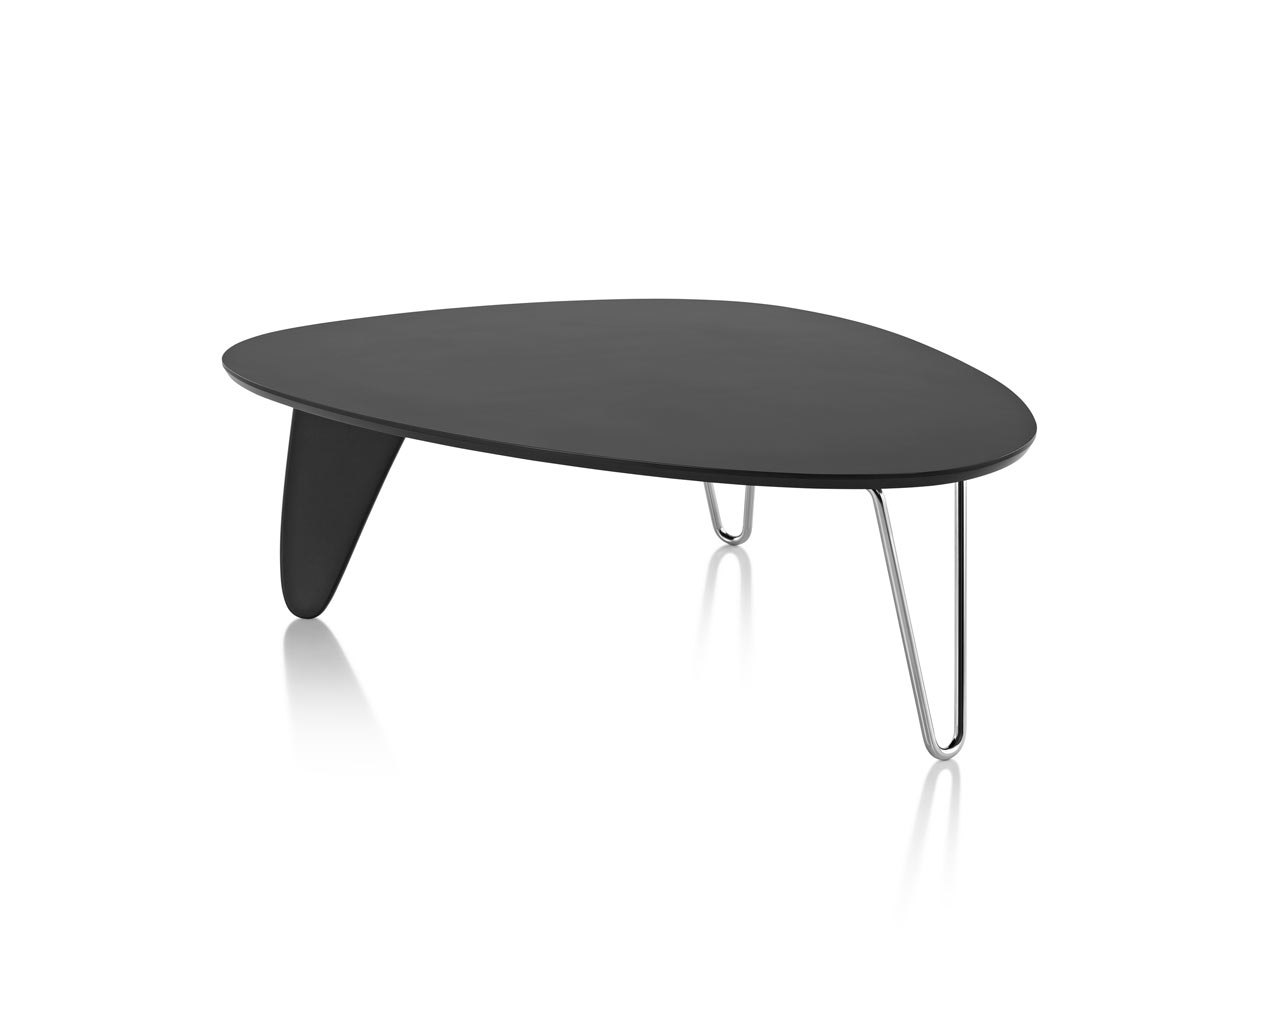 Herman Miller Re-Introduces Rudder Table by Noguchi